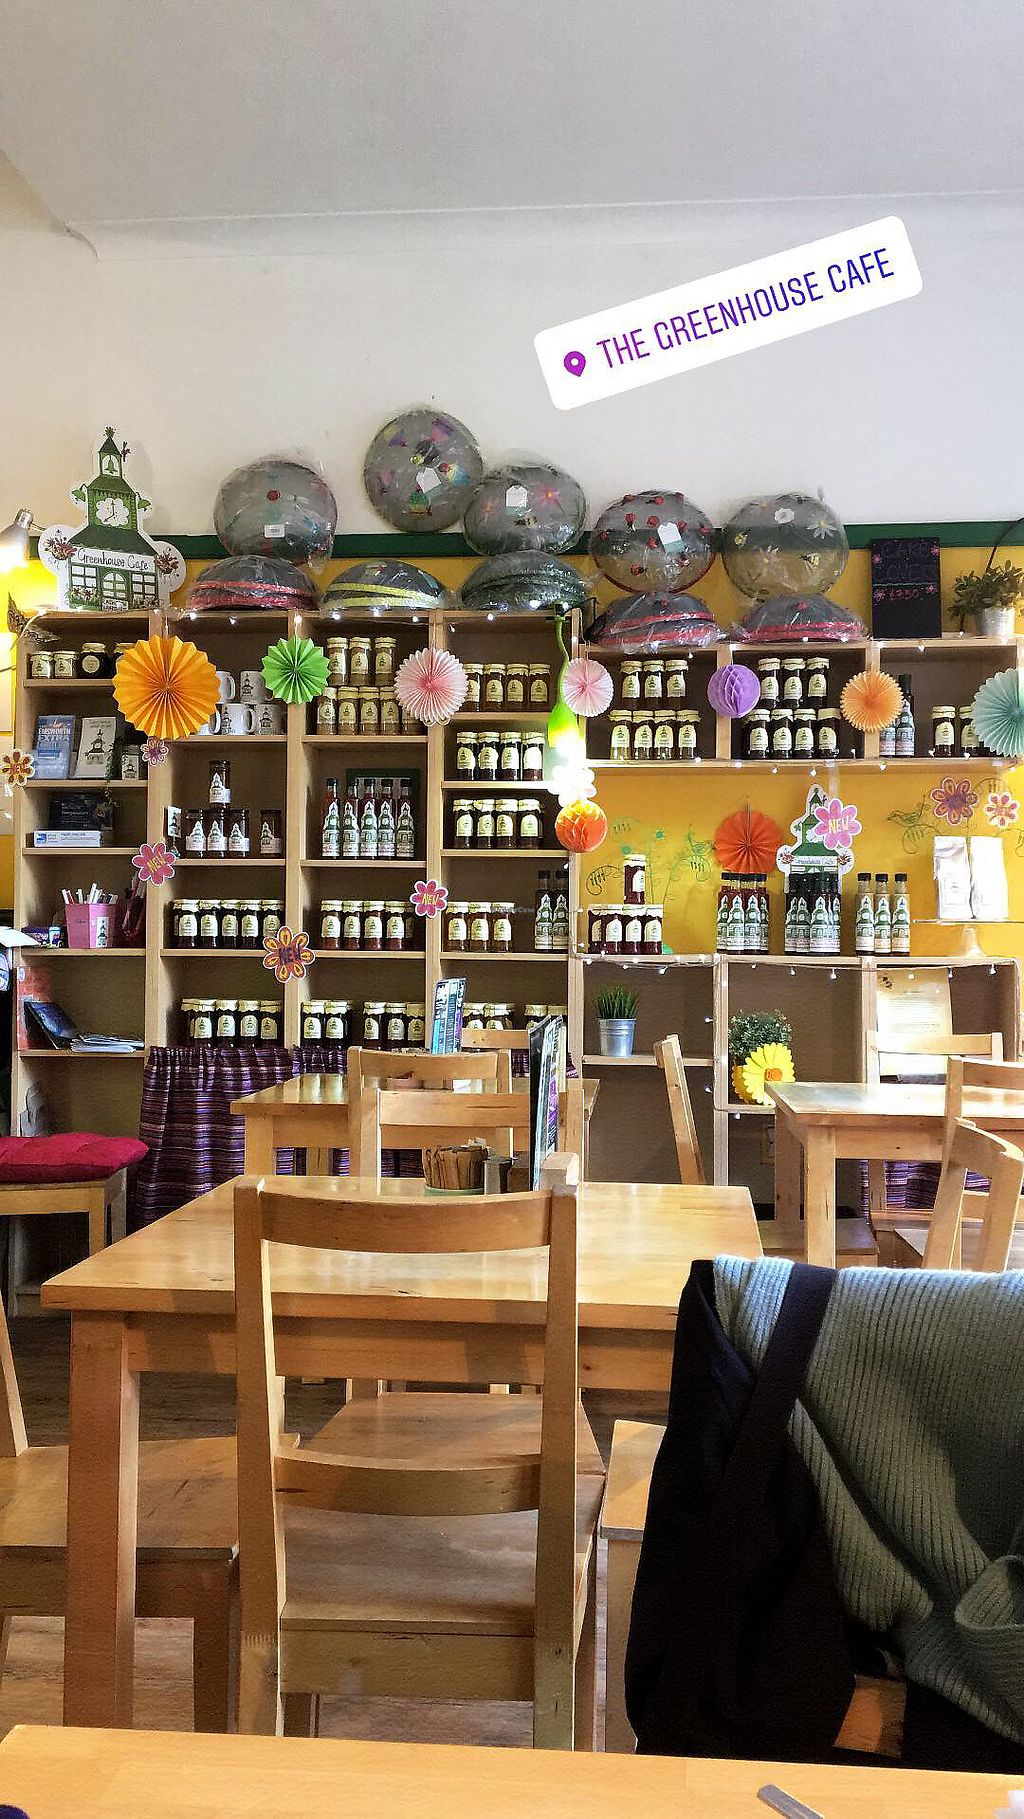 """Photo of The Greenhouse Cafe  by <a href=""""/members/profile/FreyaStewart-Grant"""">FreyaStewart-Grant</a> <br/>Interior  <br/> February 16, 2018  - <a href='/contact/abuse/image/92338/360152'>Report</a>"""